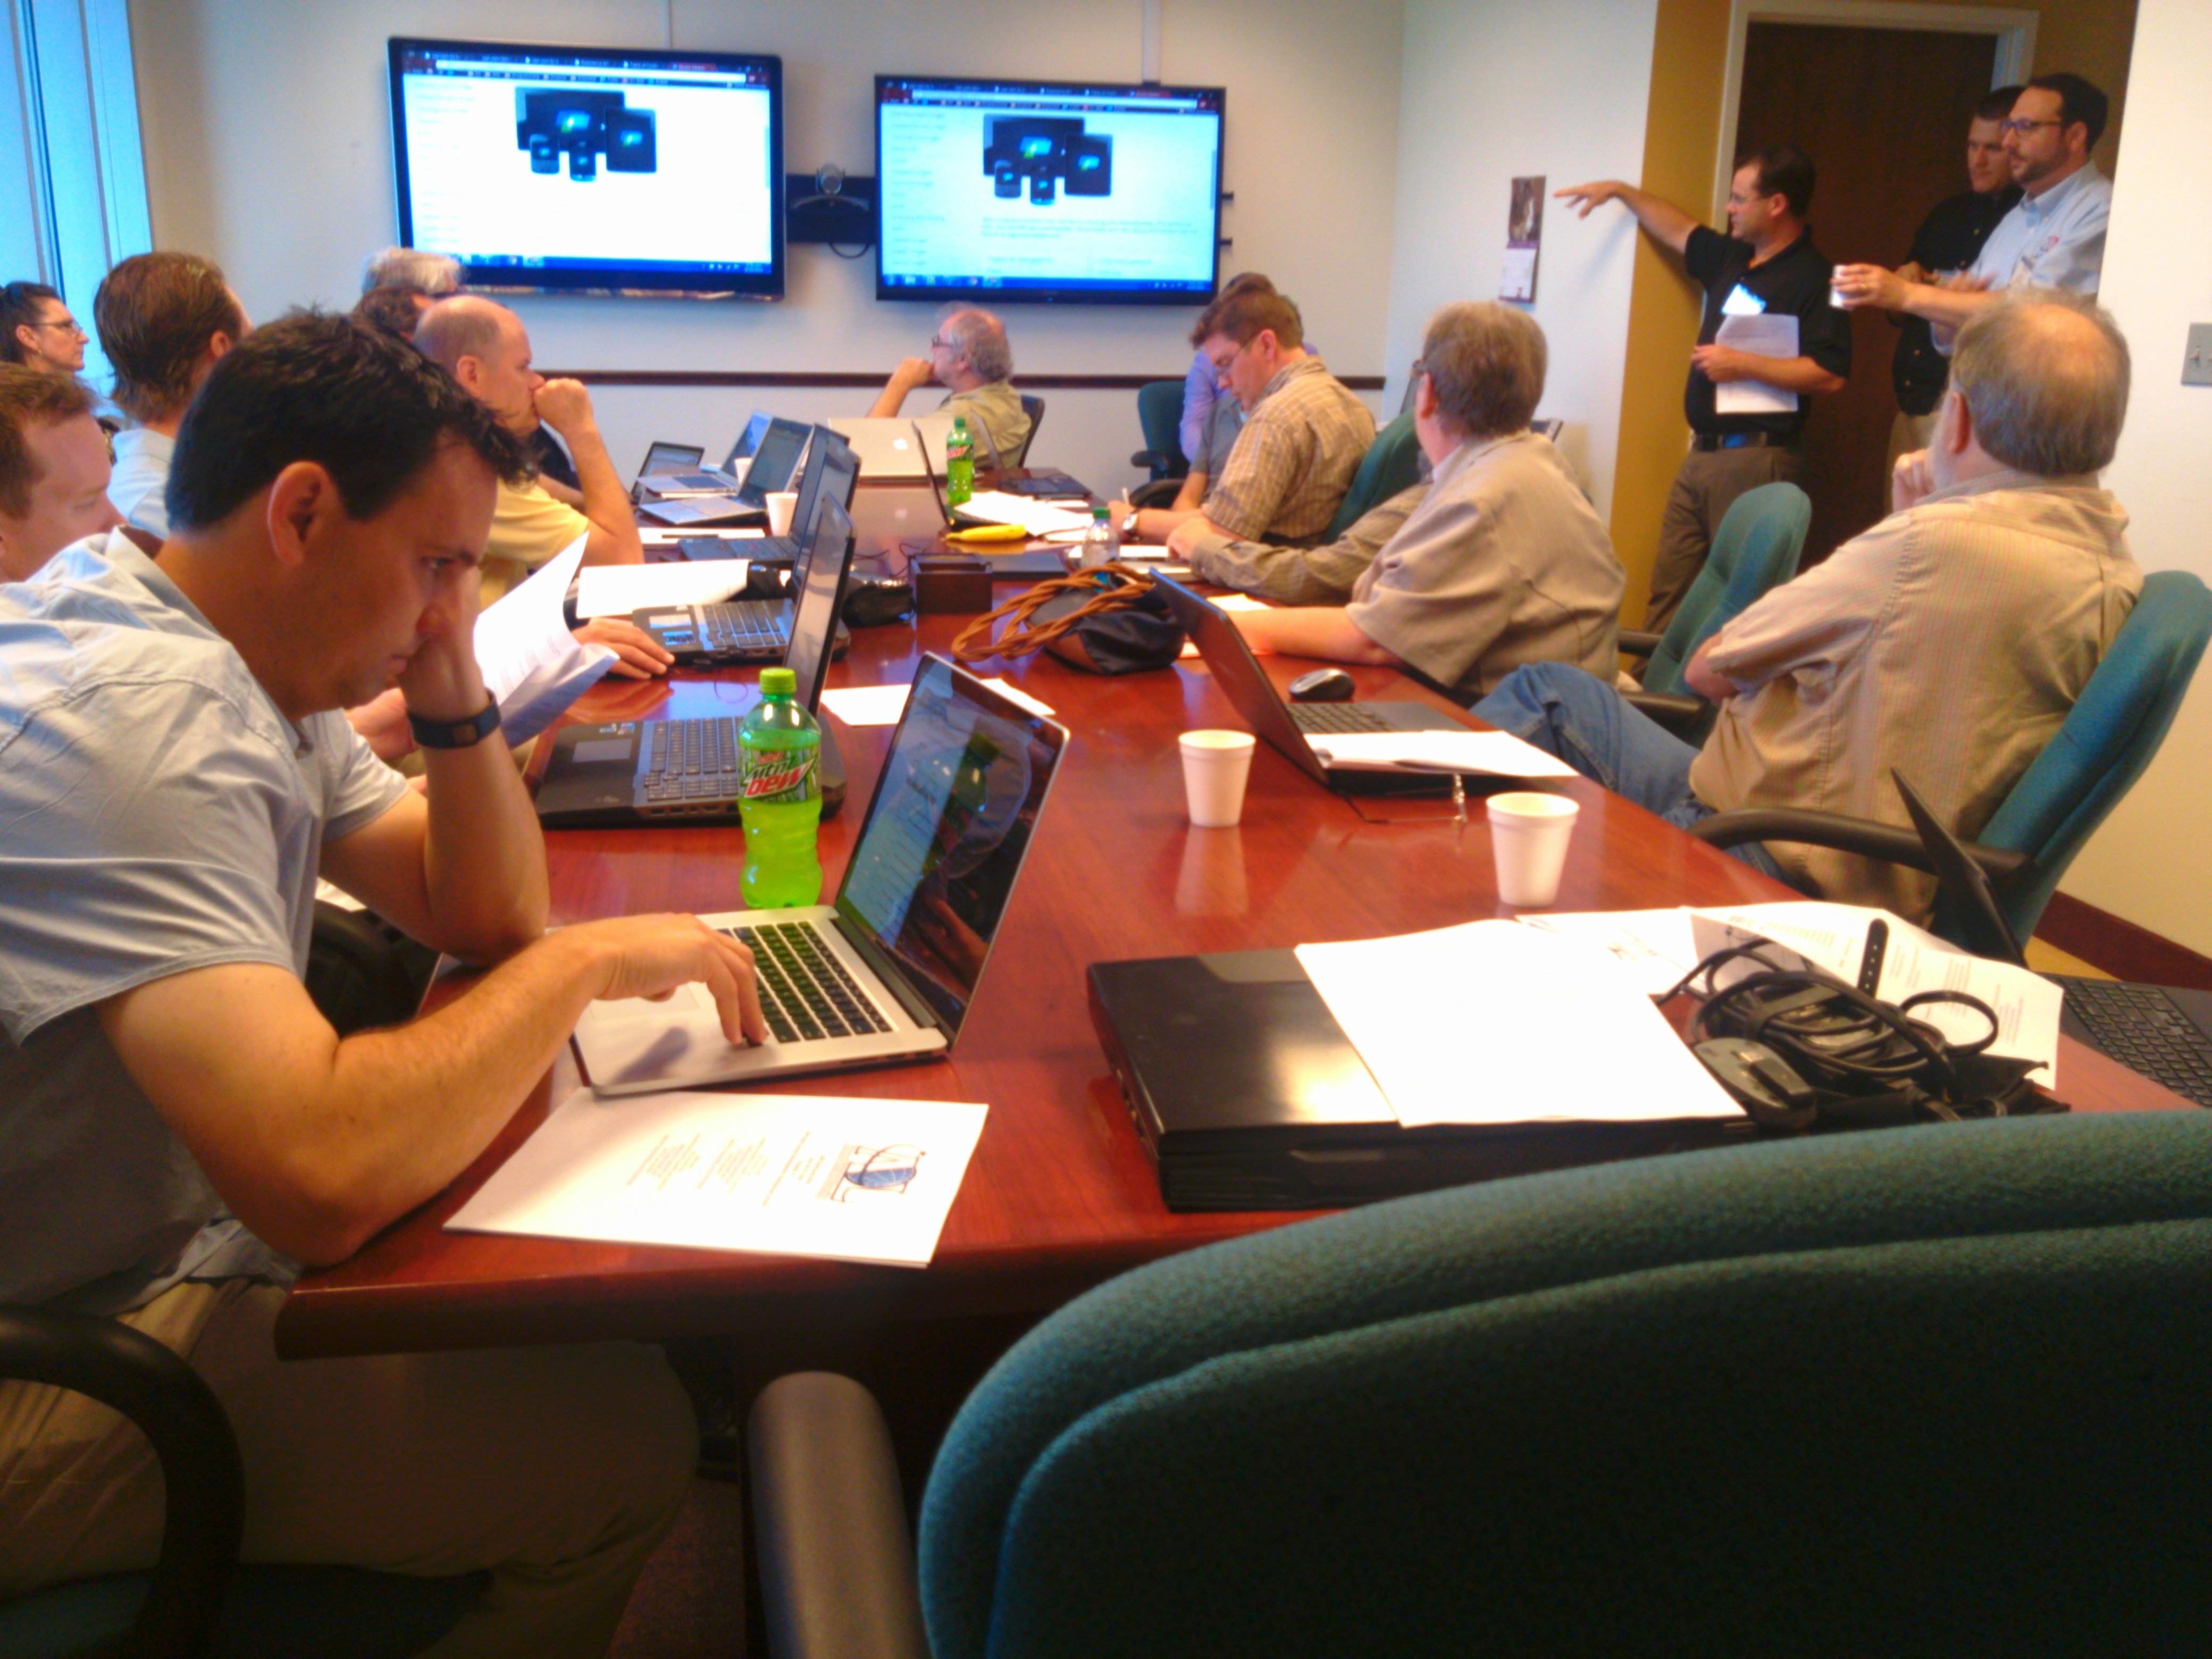 Concentrating on an xAPI Bootcamp Web Content Development session